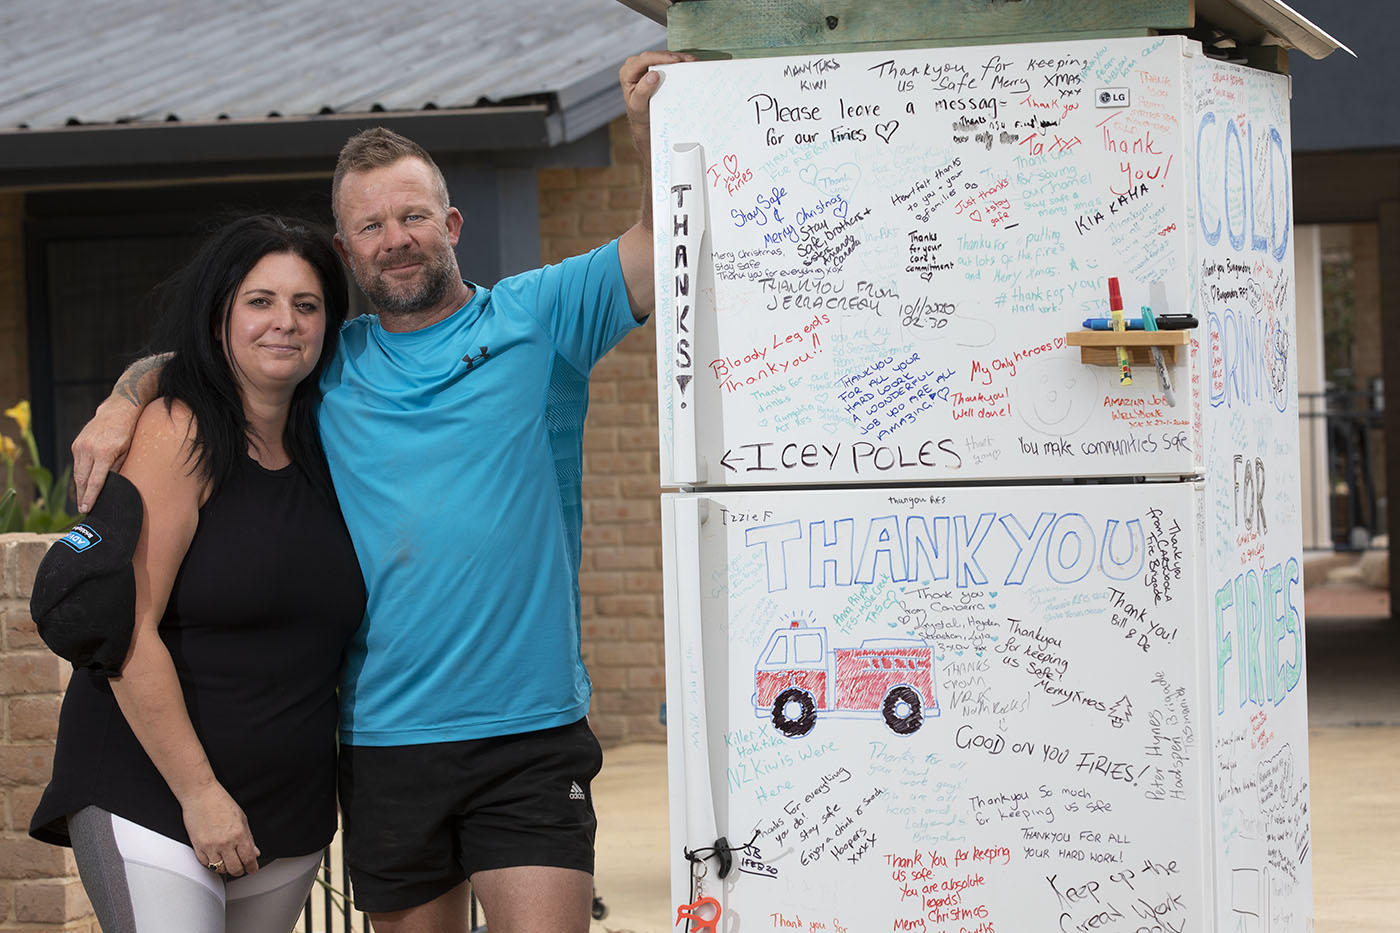 A woman and man stand beside a fridge decorated with messages of support for firefighters.